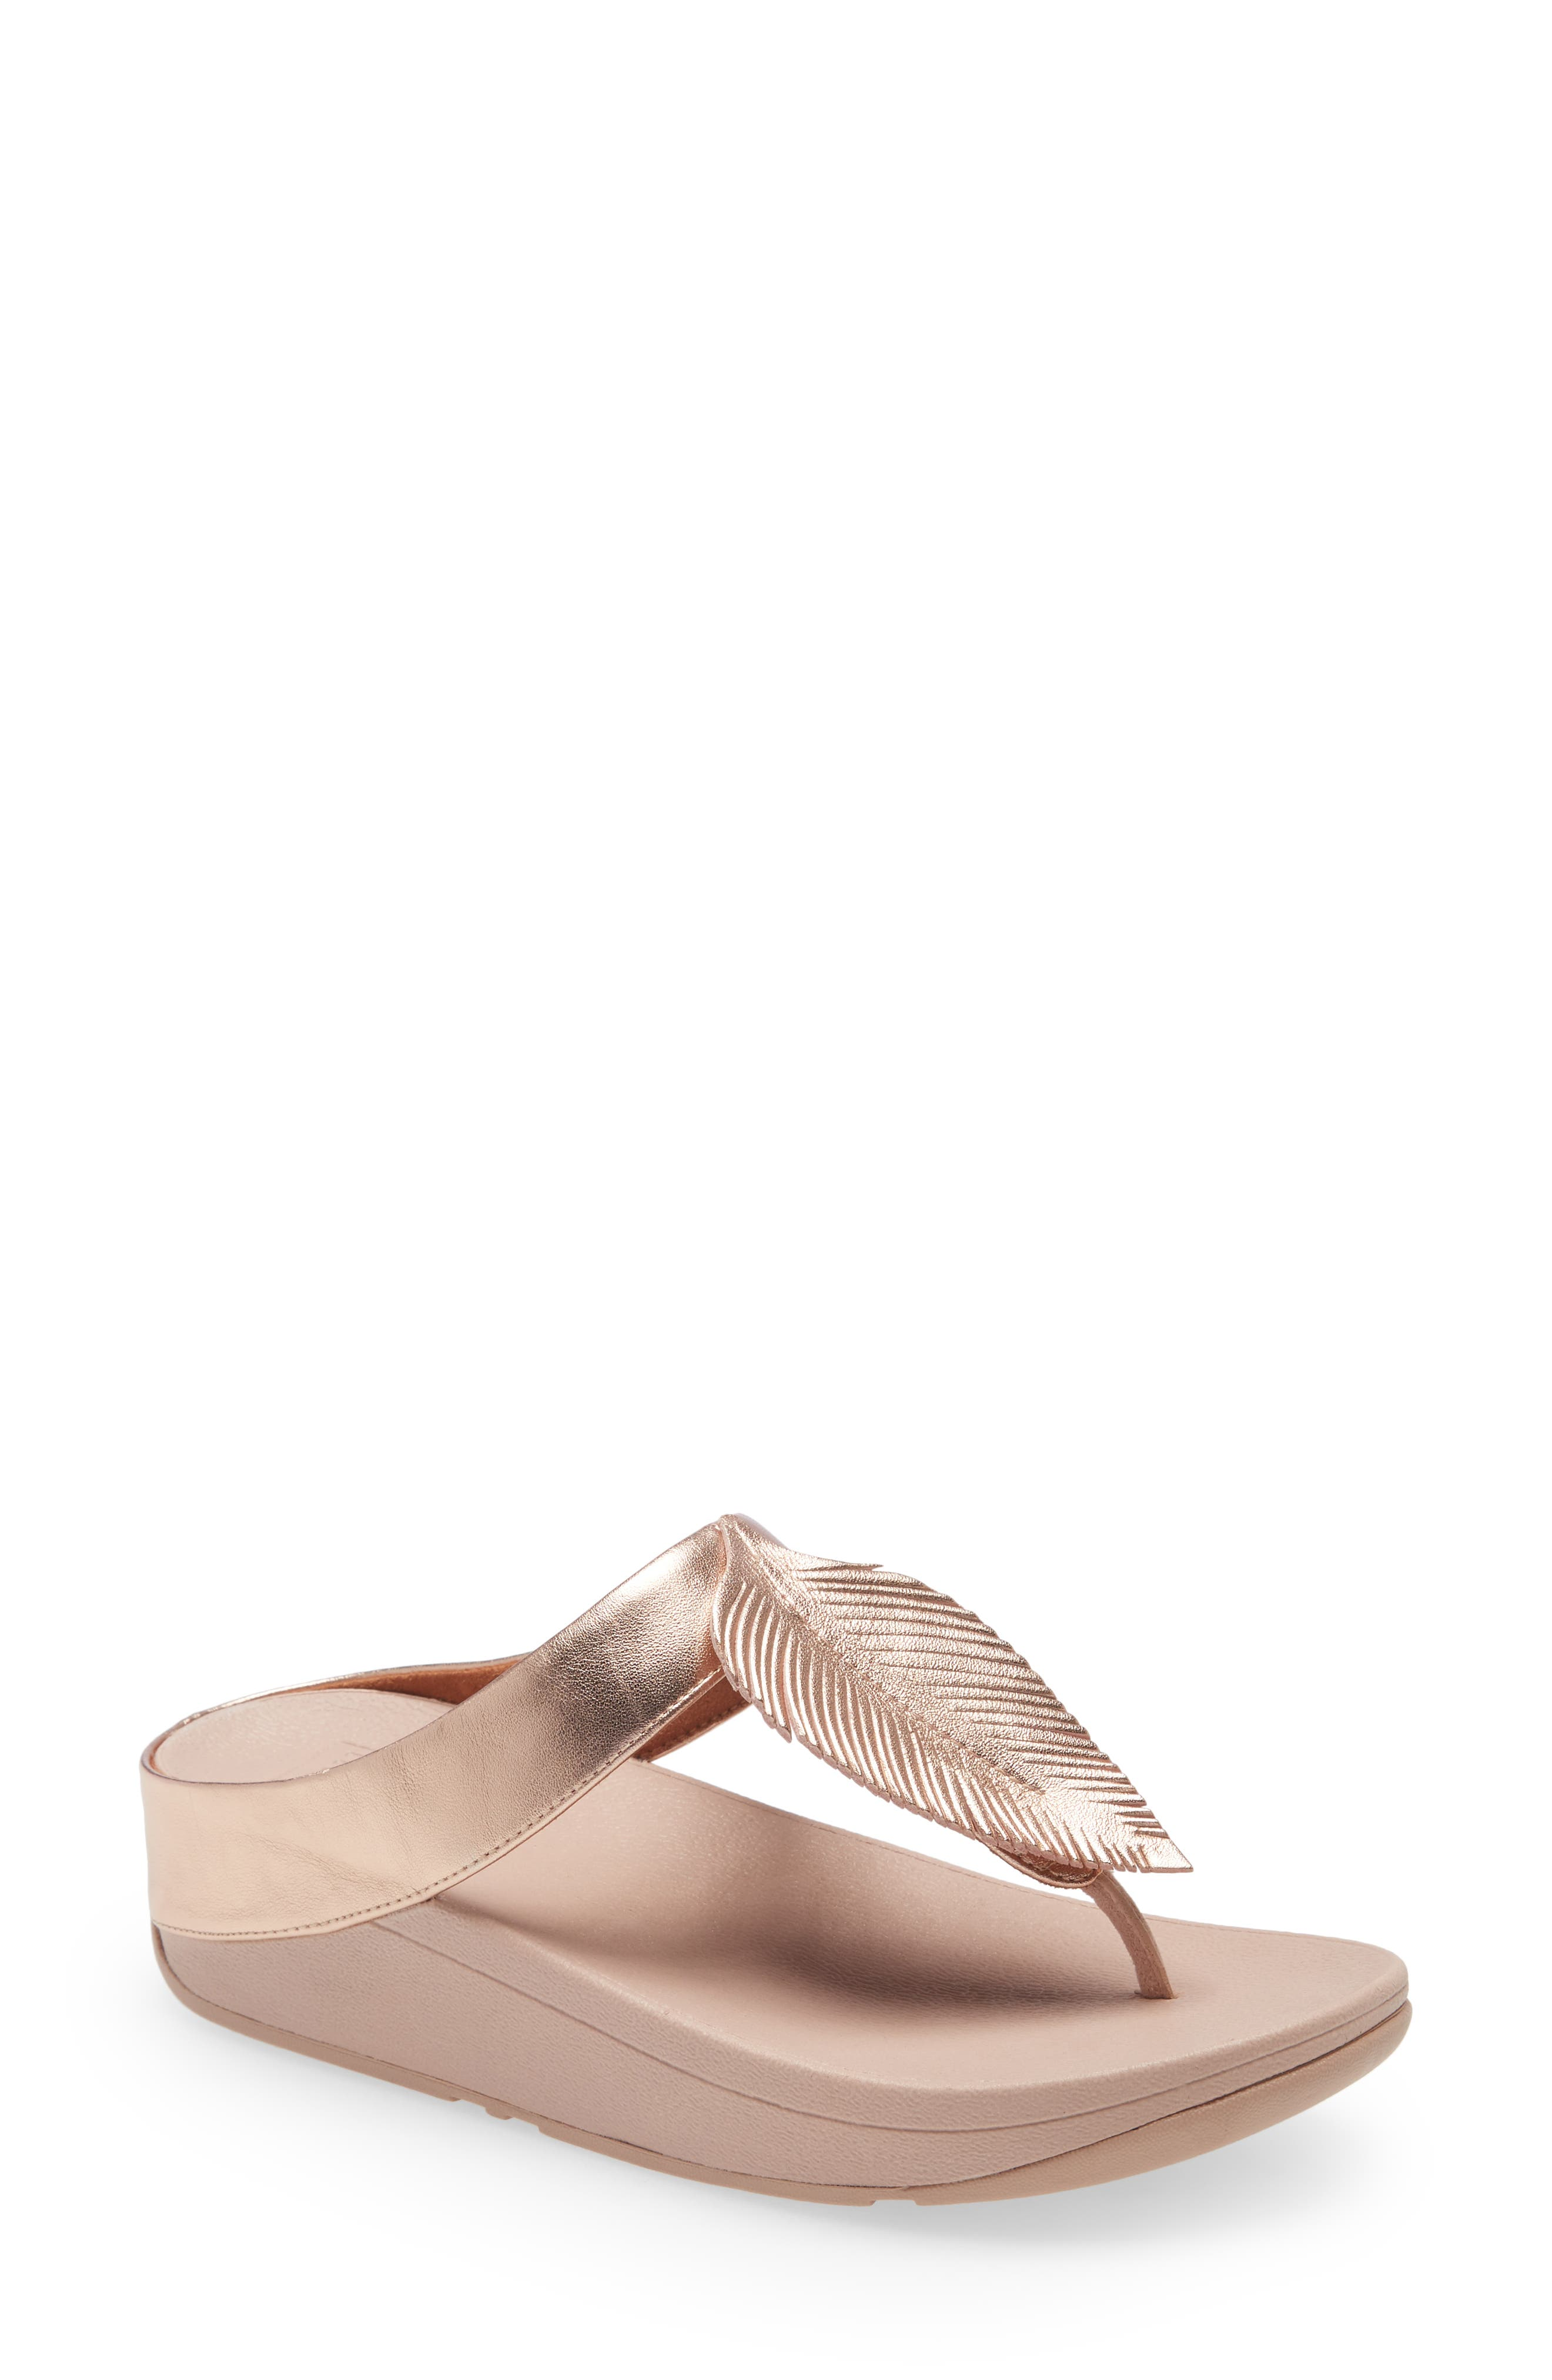 Fino Feather Flip Flop